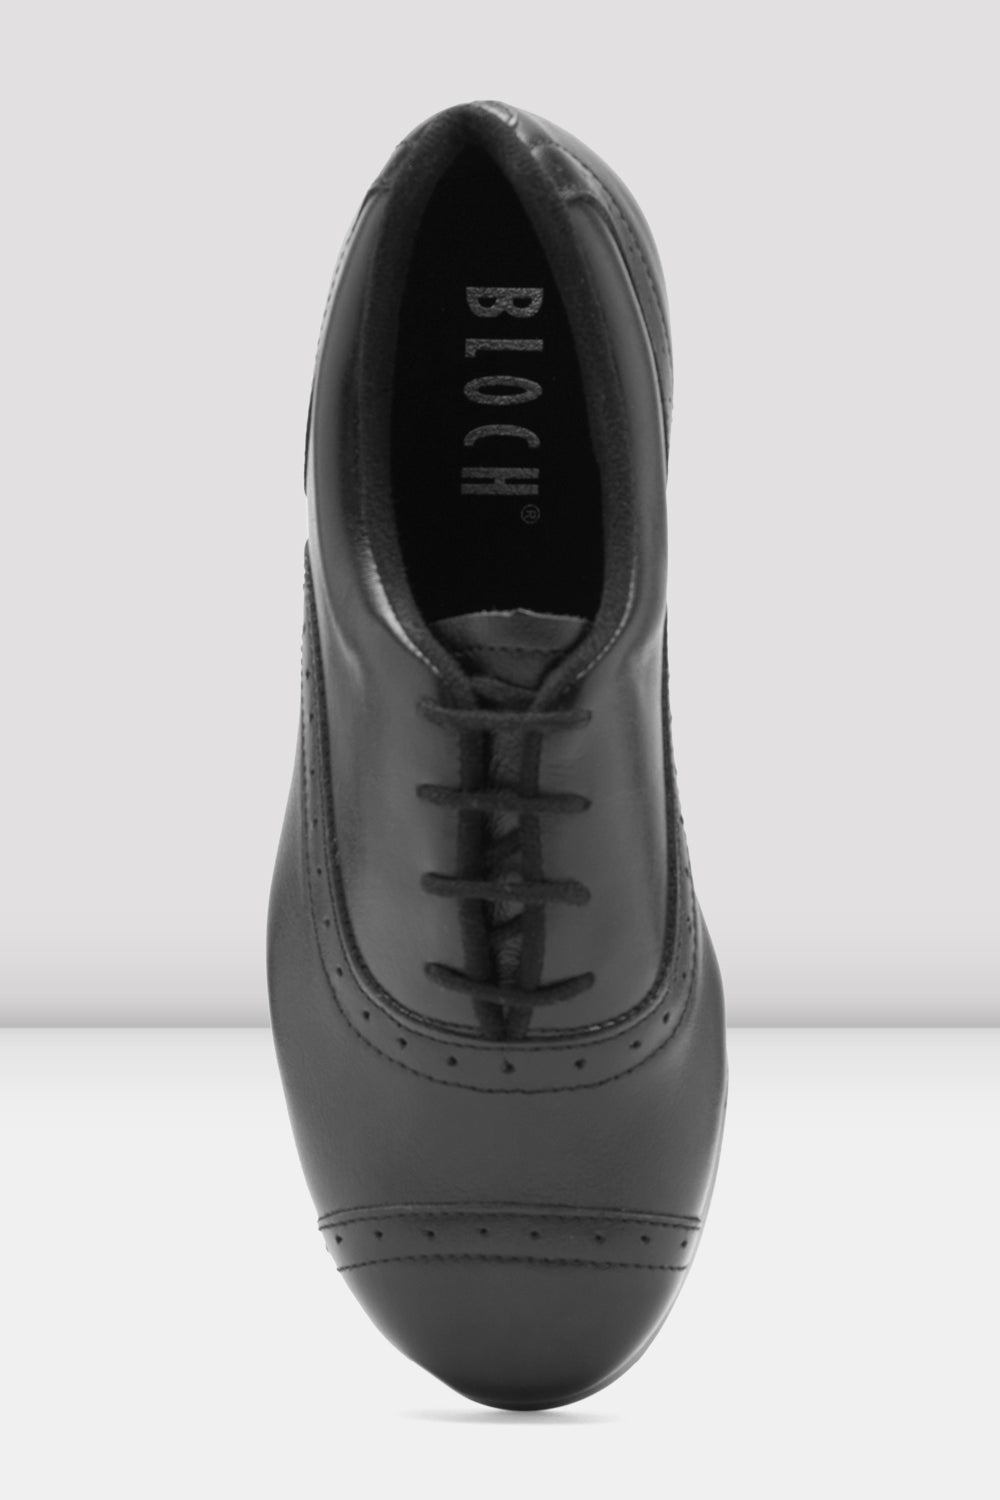 Black leather Bloch Ladies Jason Samuels Smith Tap Shoes single shoe  focus on top of shoe